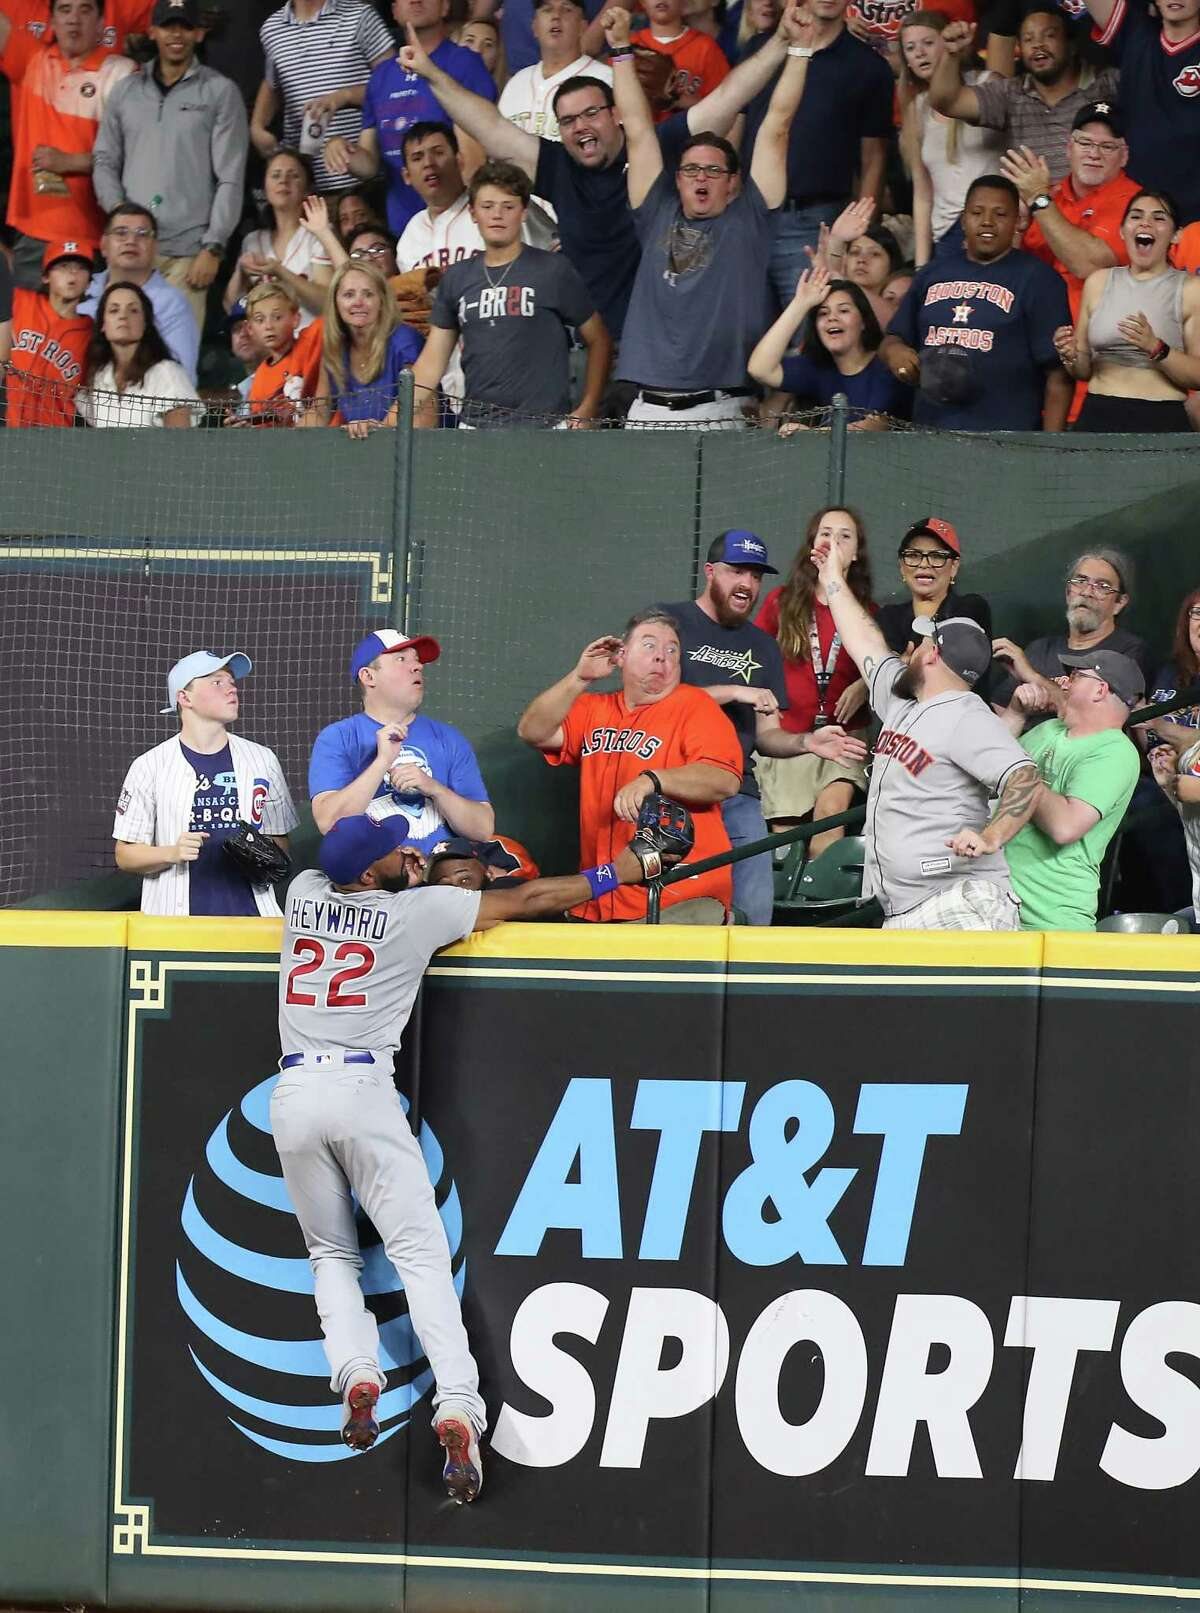 Chicago Cubs right fielder Jason Heyward (22) could reach Houston Astros third baseman Alex Bregman (2) homer during the 6th-inning of an MLB baseball game at Minute Maid Park Tuesday, May 28, 2019, in Houston.